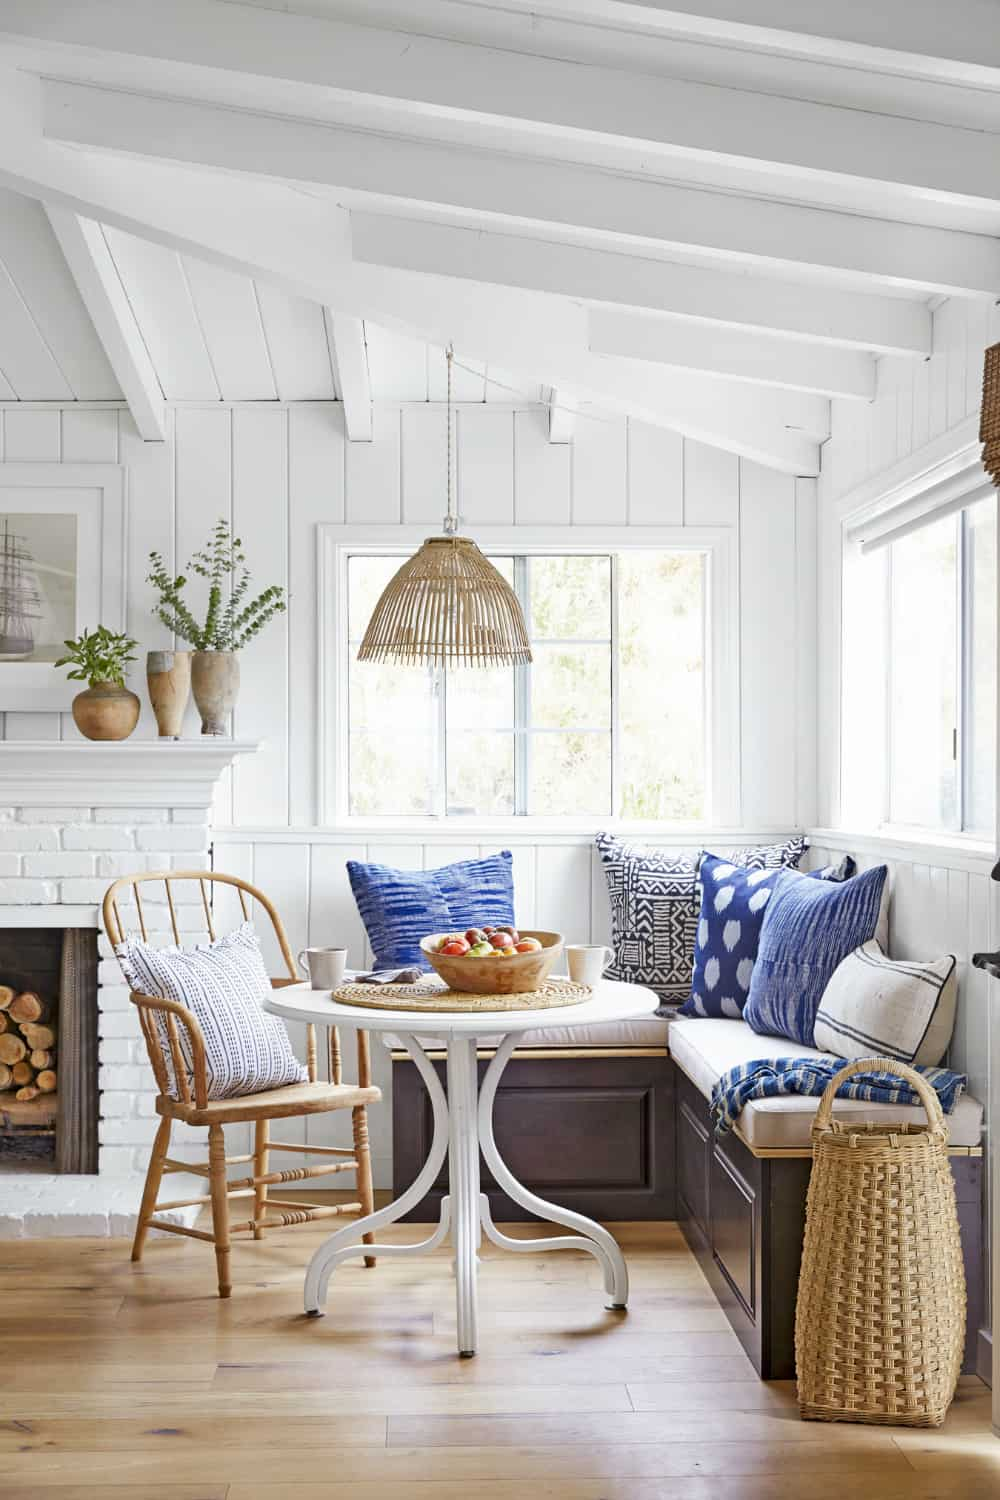 Sweet country-style breakfast table